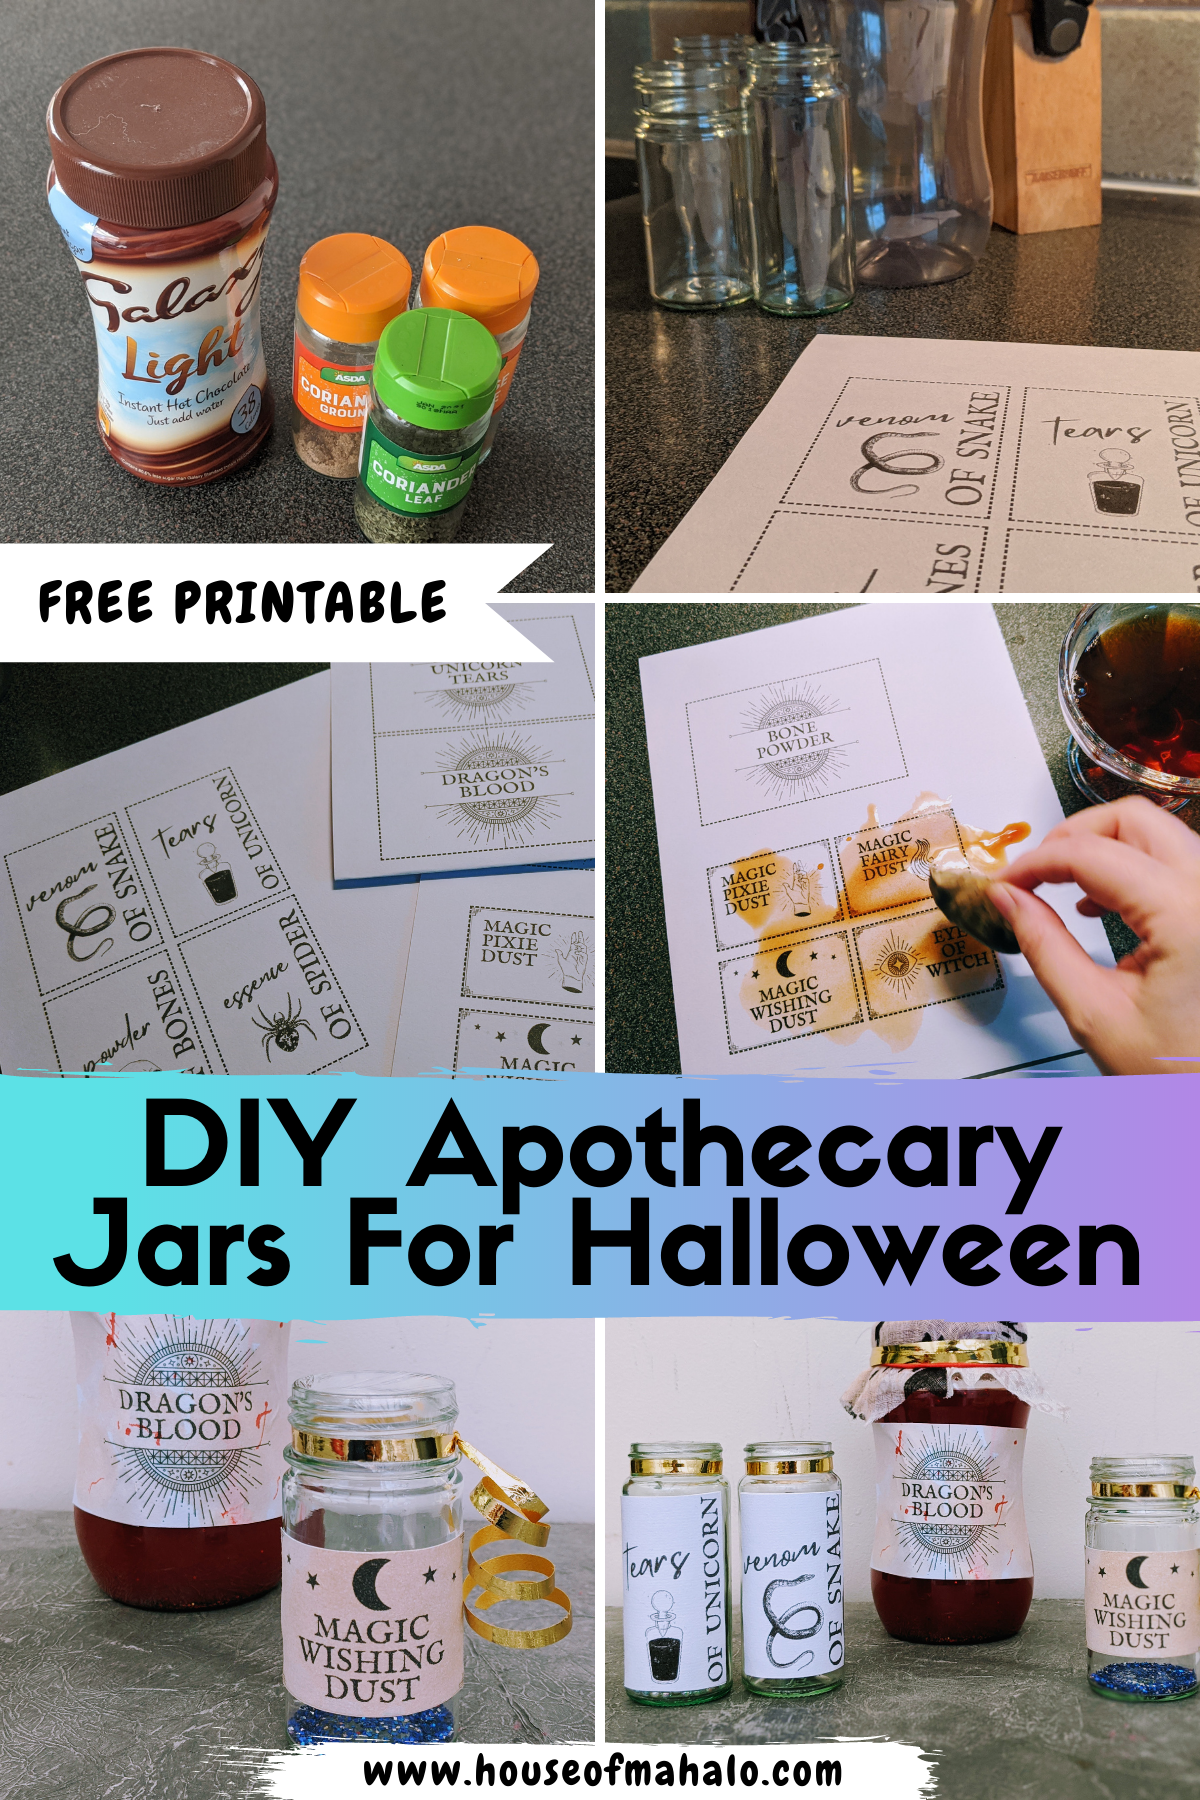 Easy DIY Apothecary Jars For Halloween   Free Printable Halloween Labels